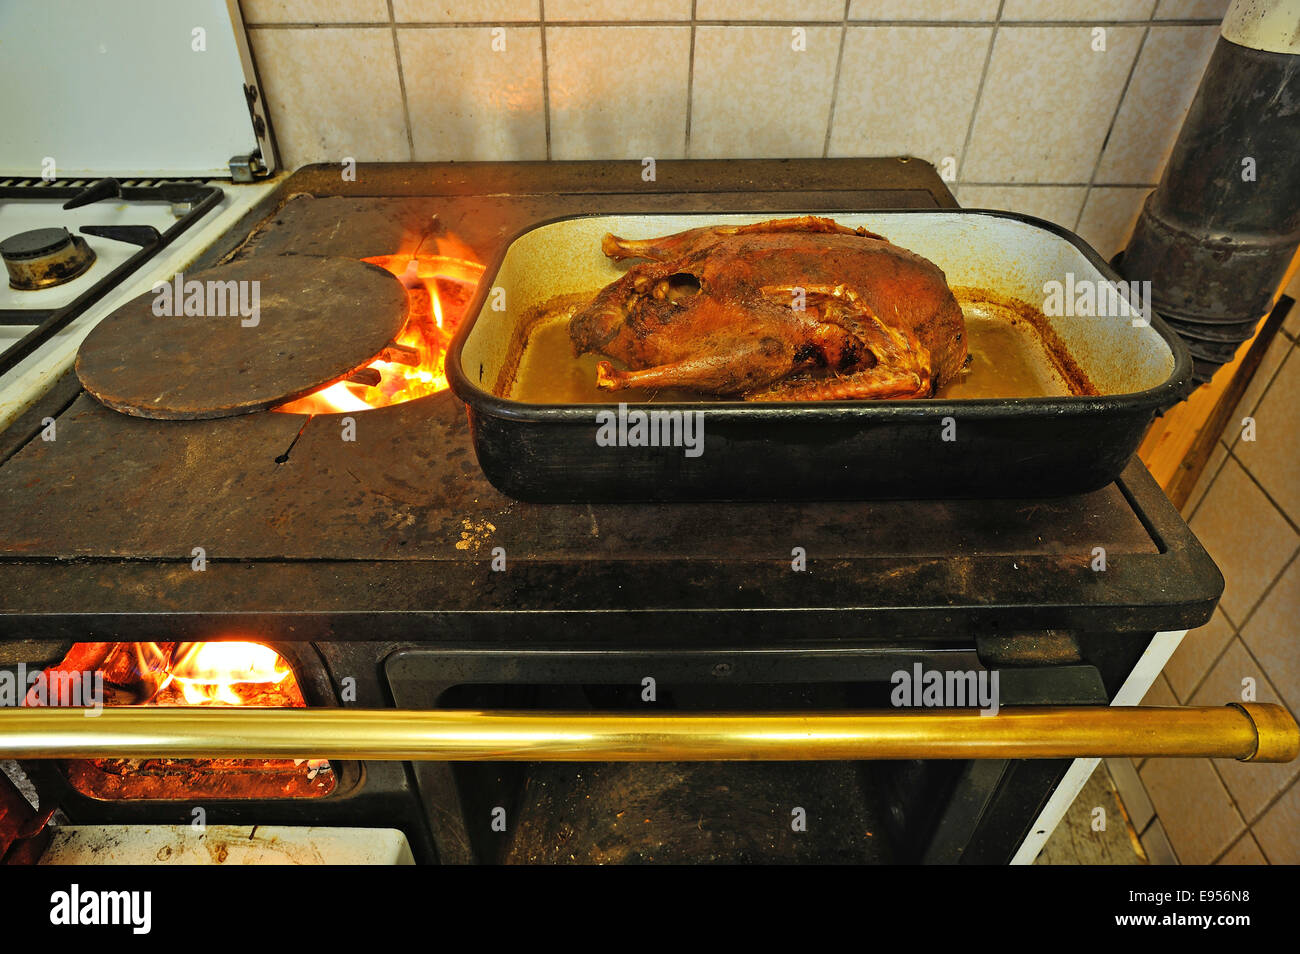 Ready roast duck in a roasting pan on an old coal-fired stove with open fire plate, Middle Franconia, Bavaria, Germany - Stock Image